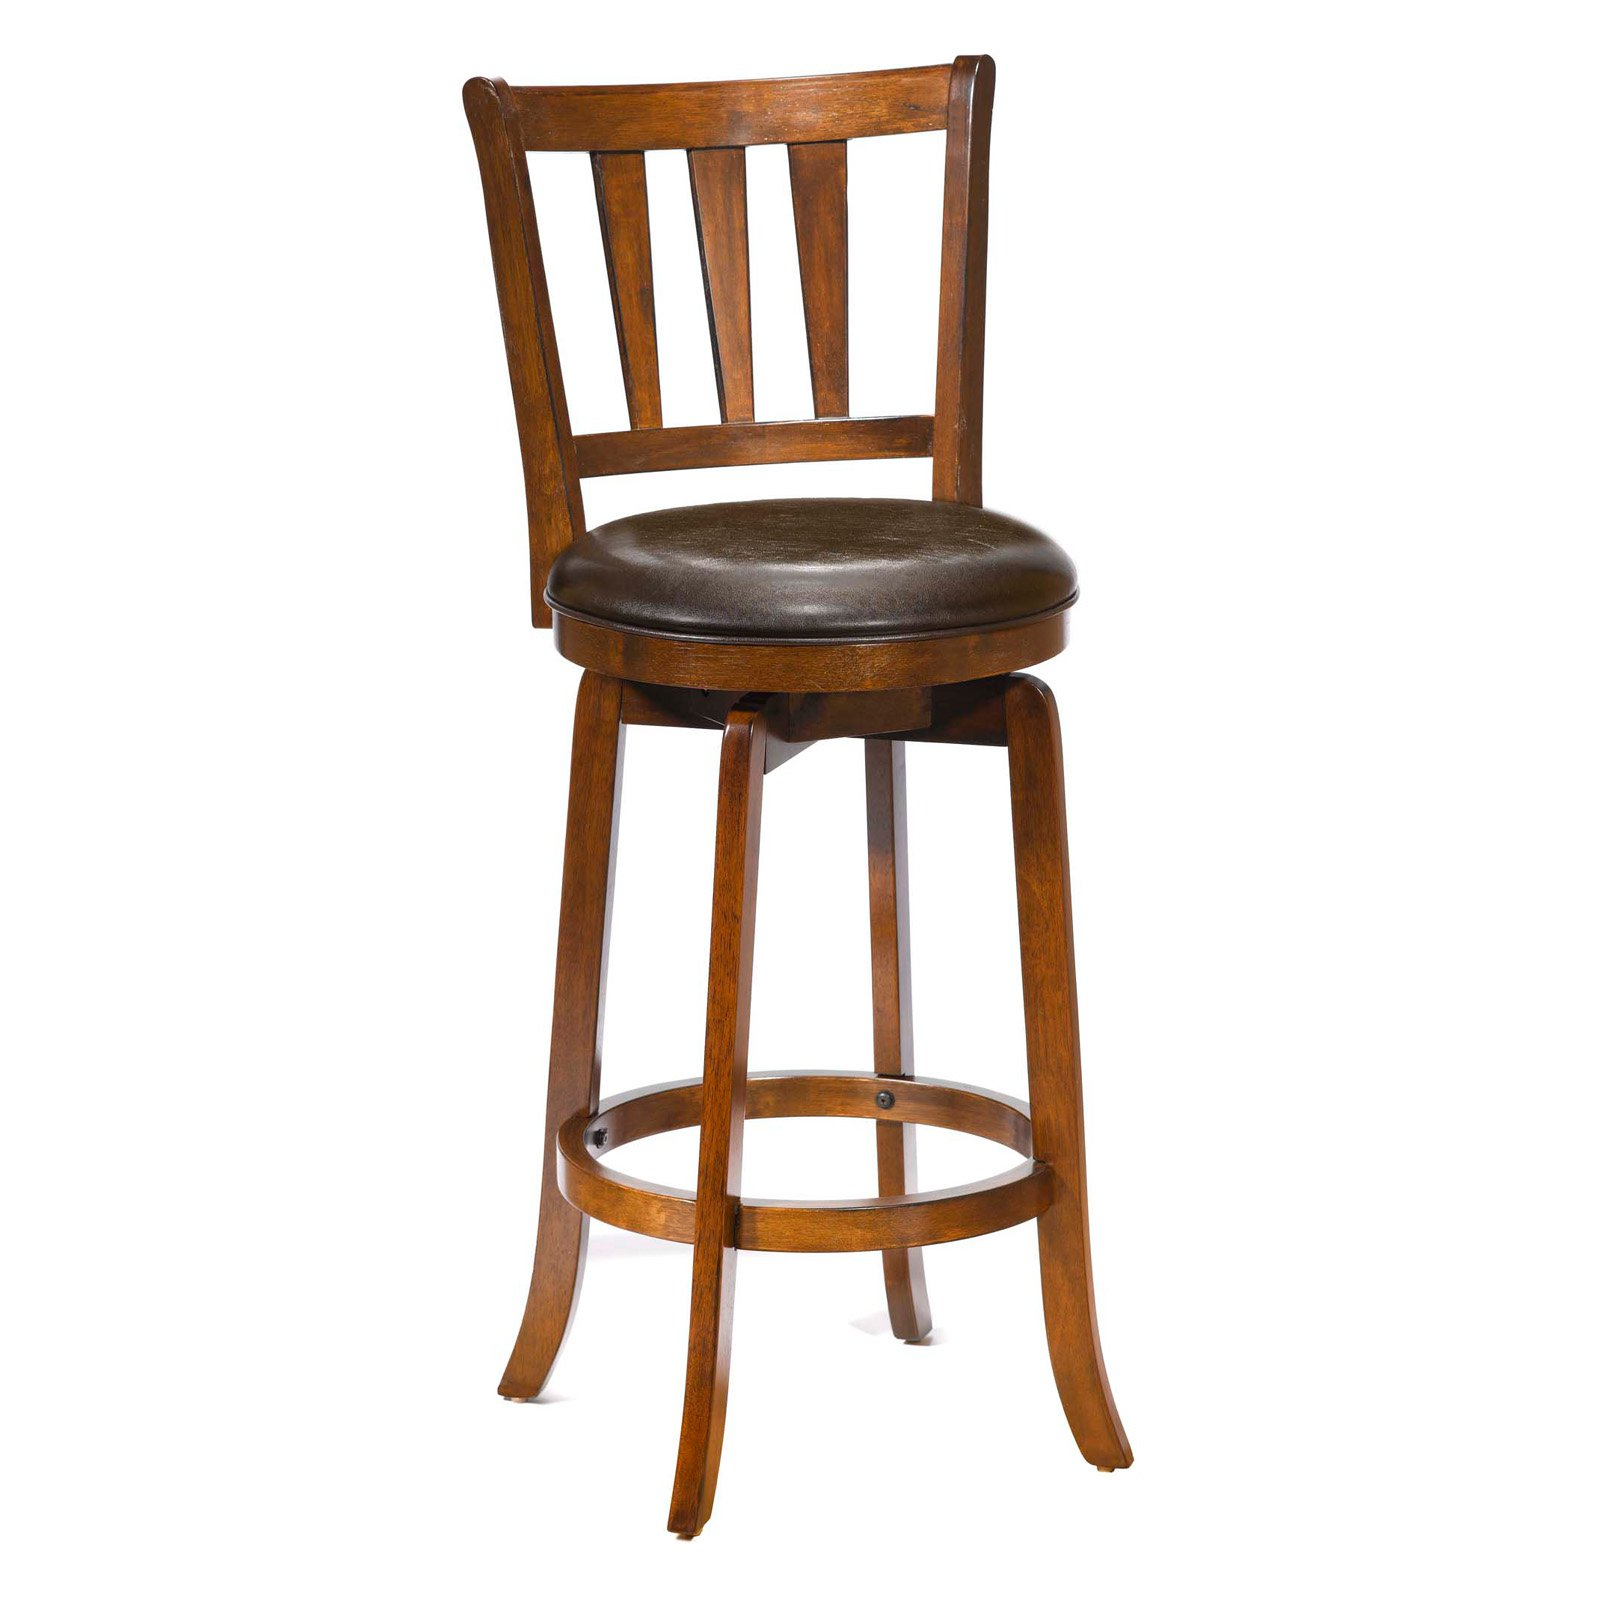 Hillsdale Presque Isle 30 in Swivel Bar Stool Cherry Walmart